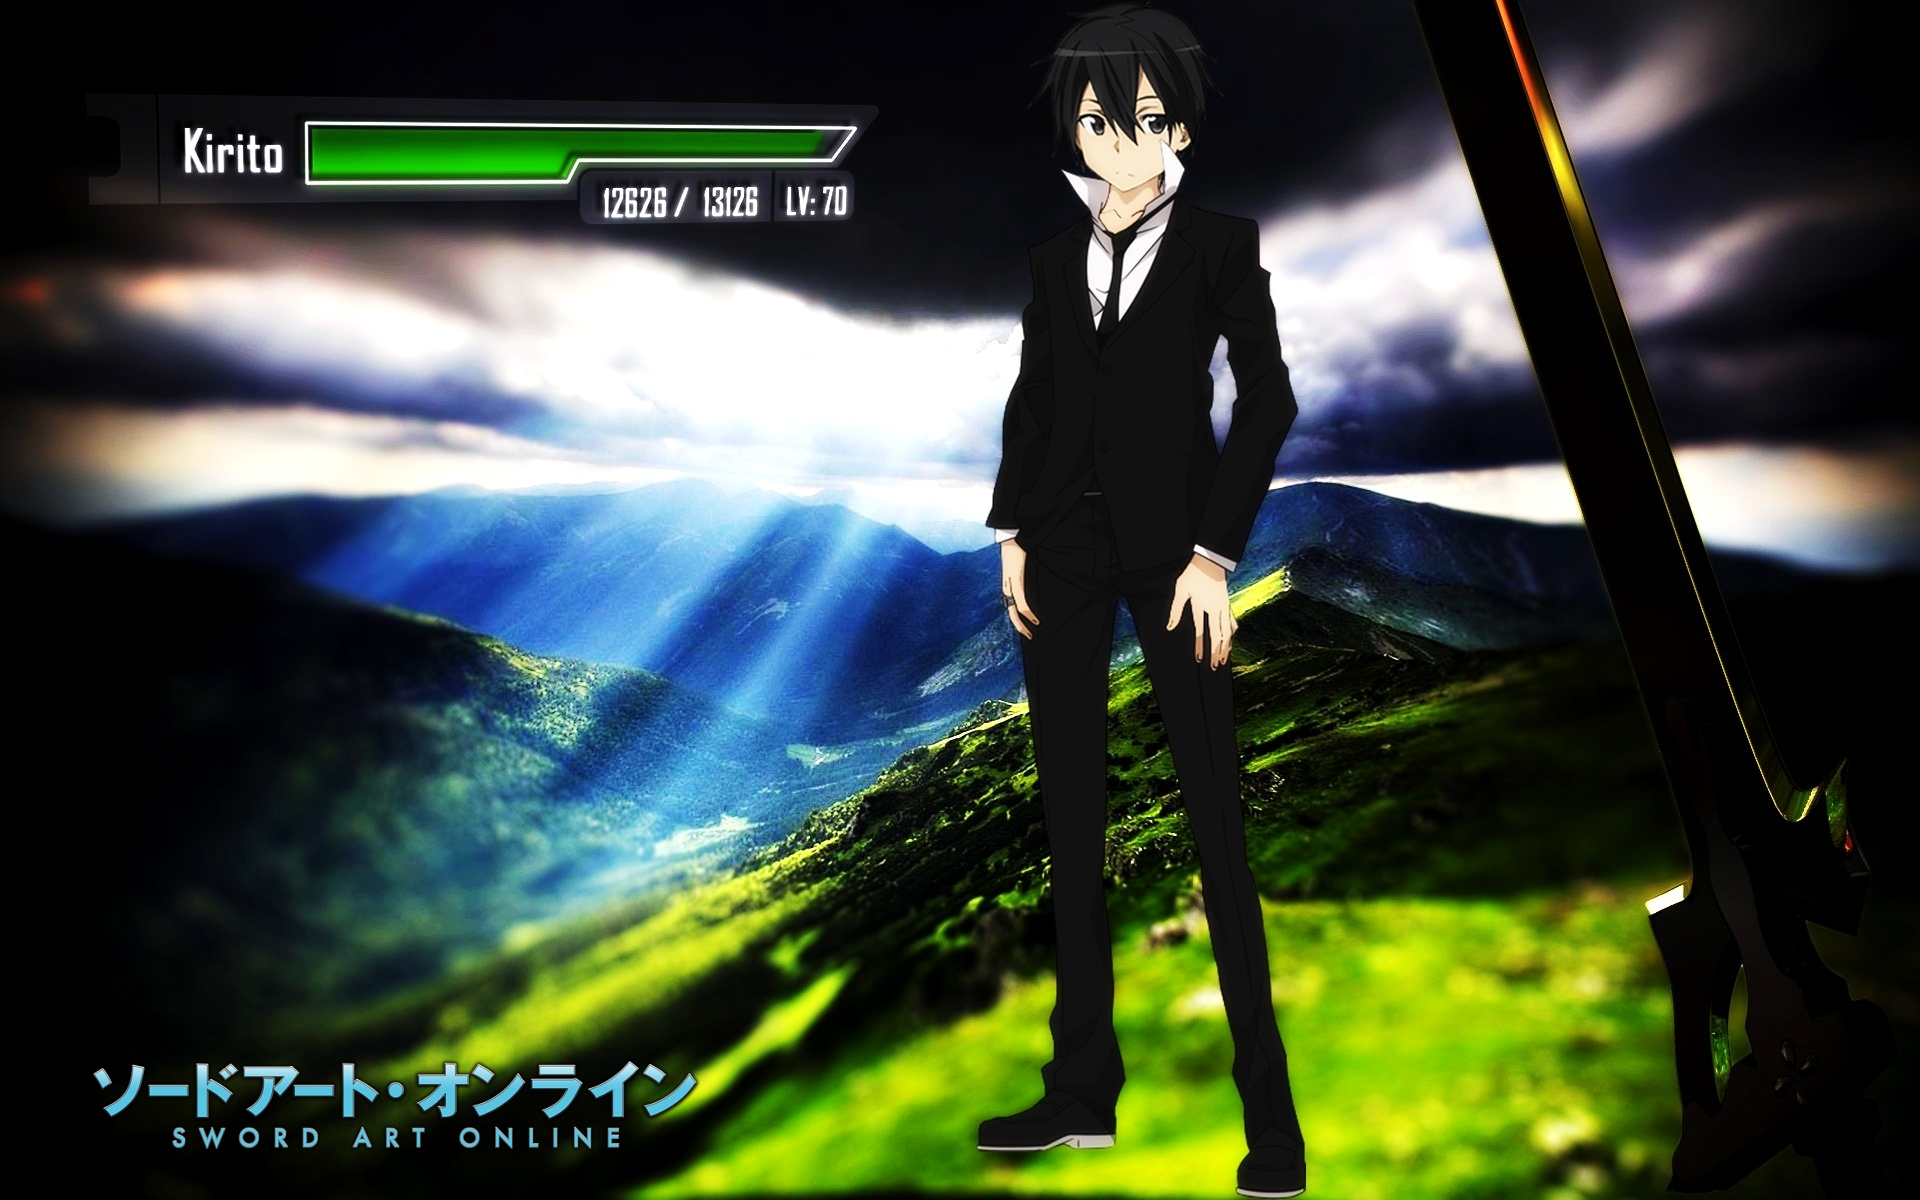 Sword Art Online Kirigaya Kazuto Wallpaper By Ryu17v